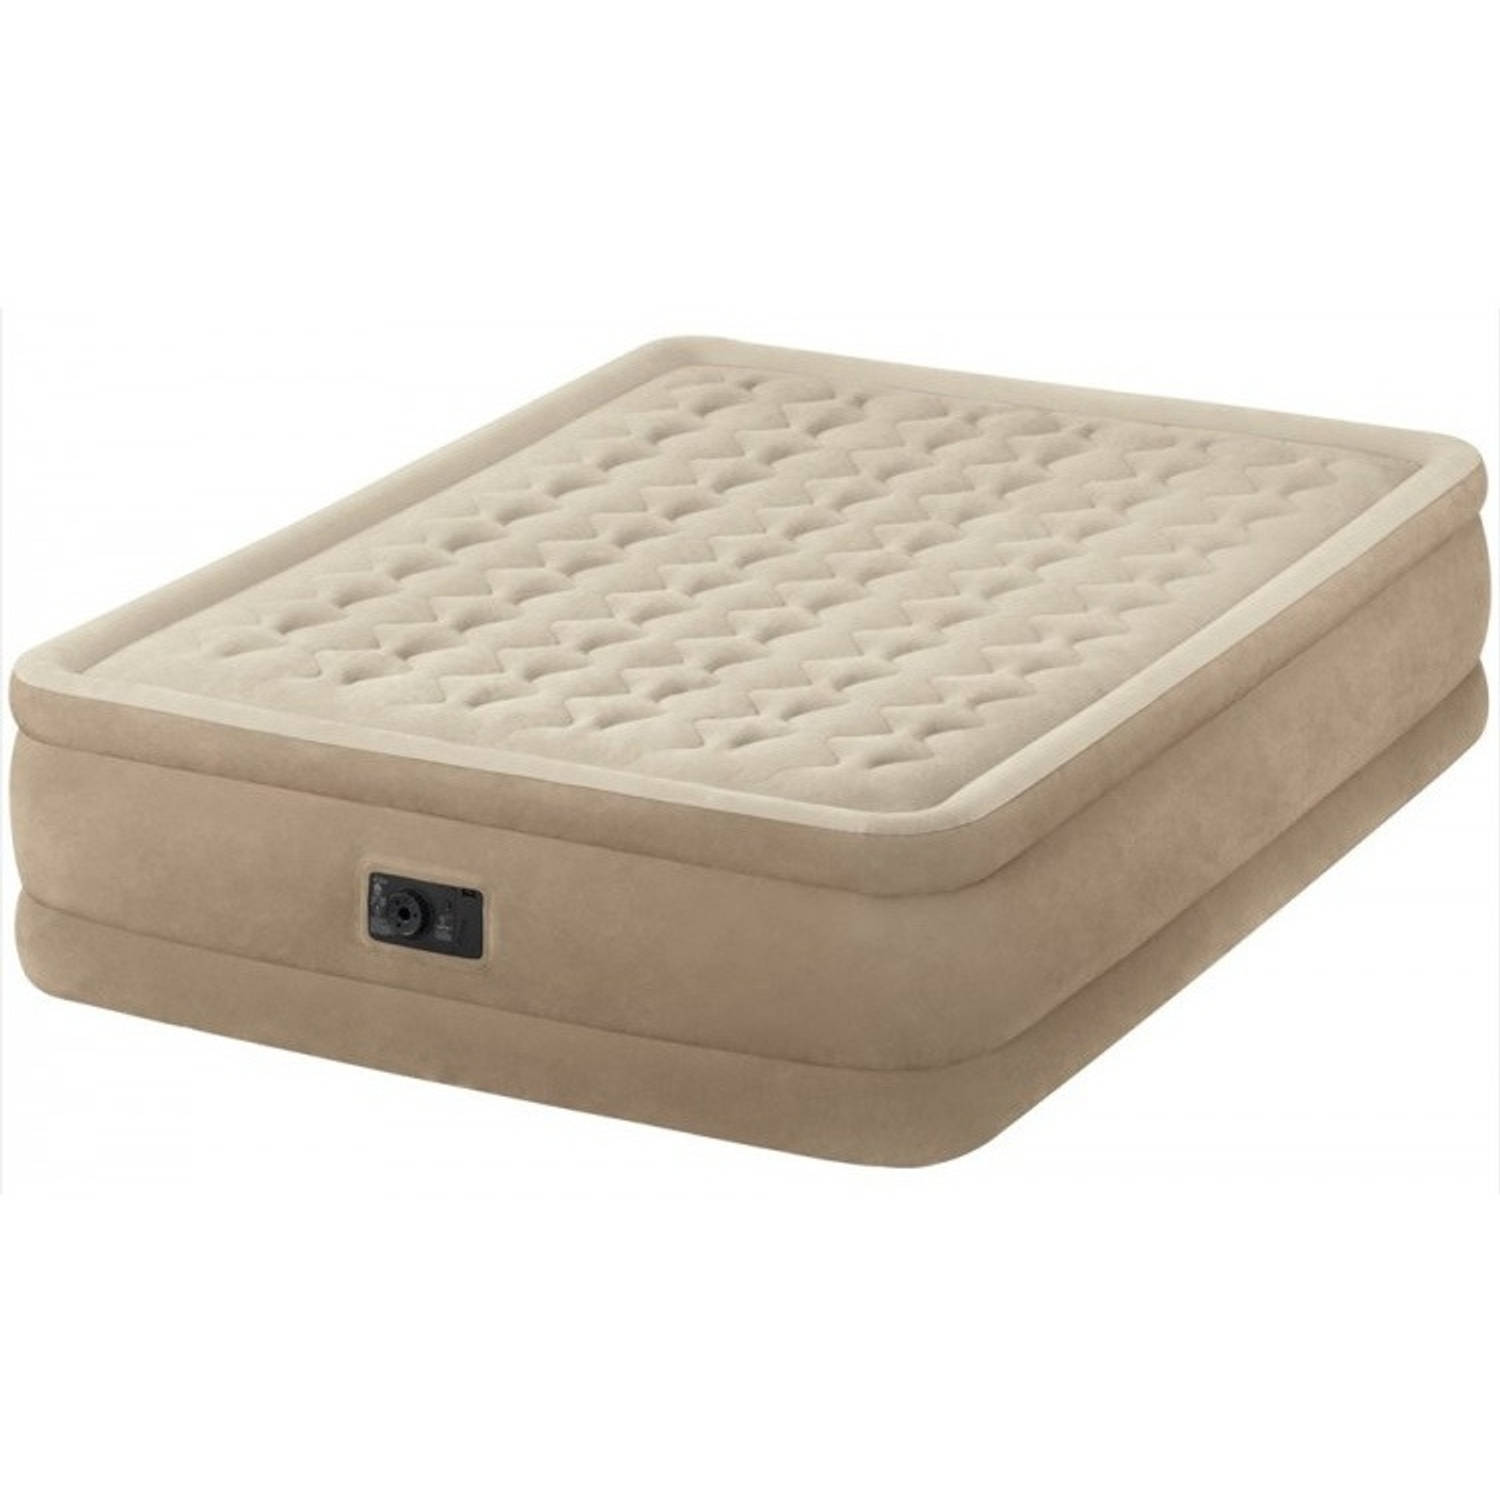 Intex luchtbed 2 persoons Ultra Plush beige 203 x 152 x 46 cm